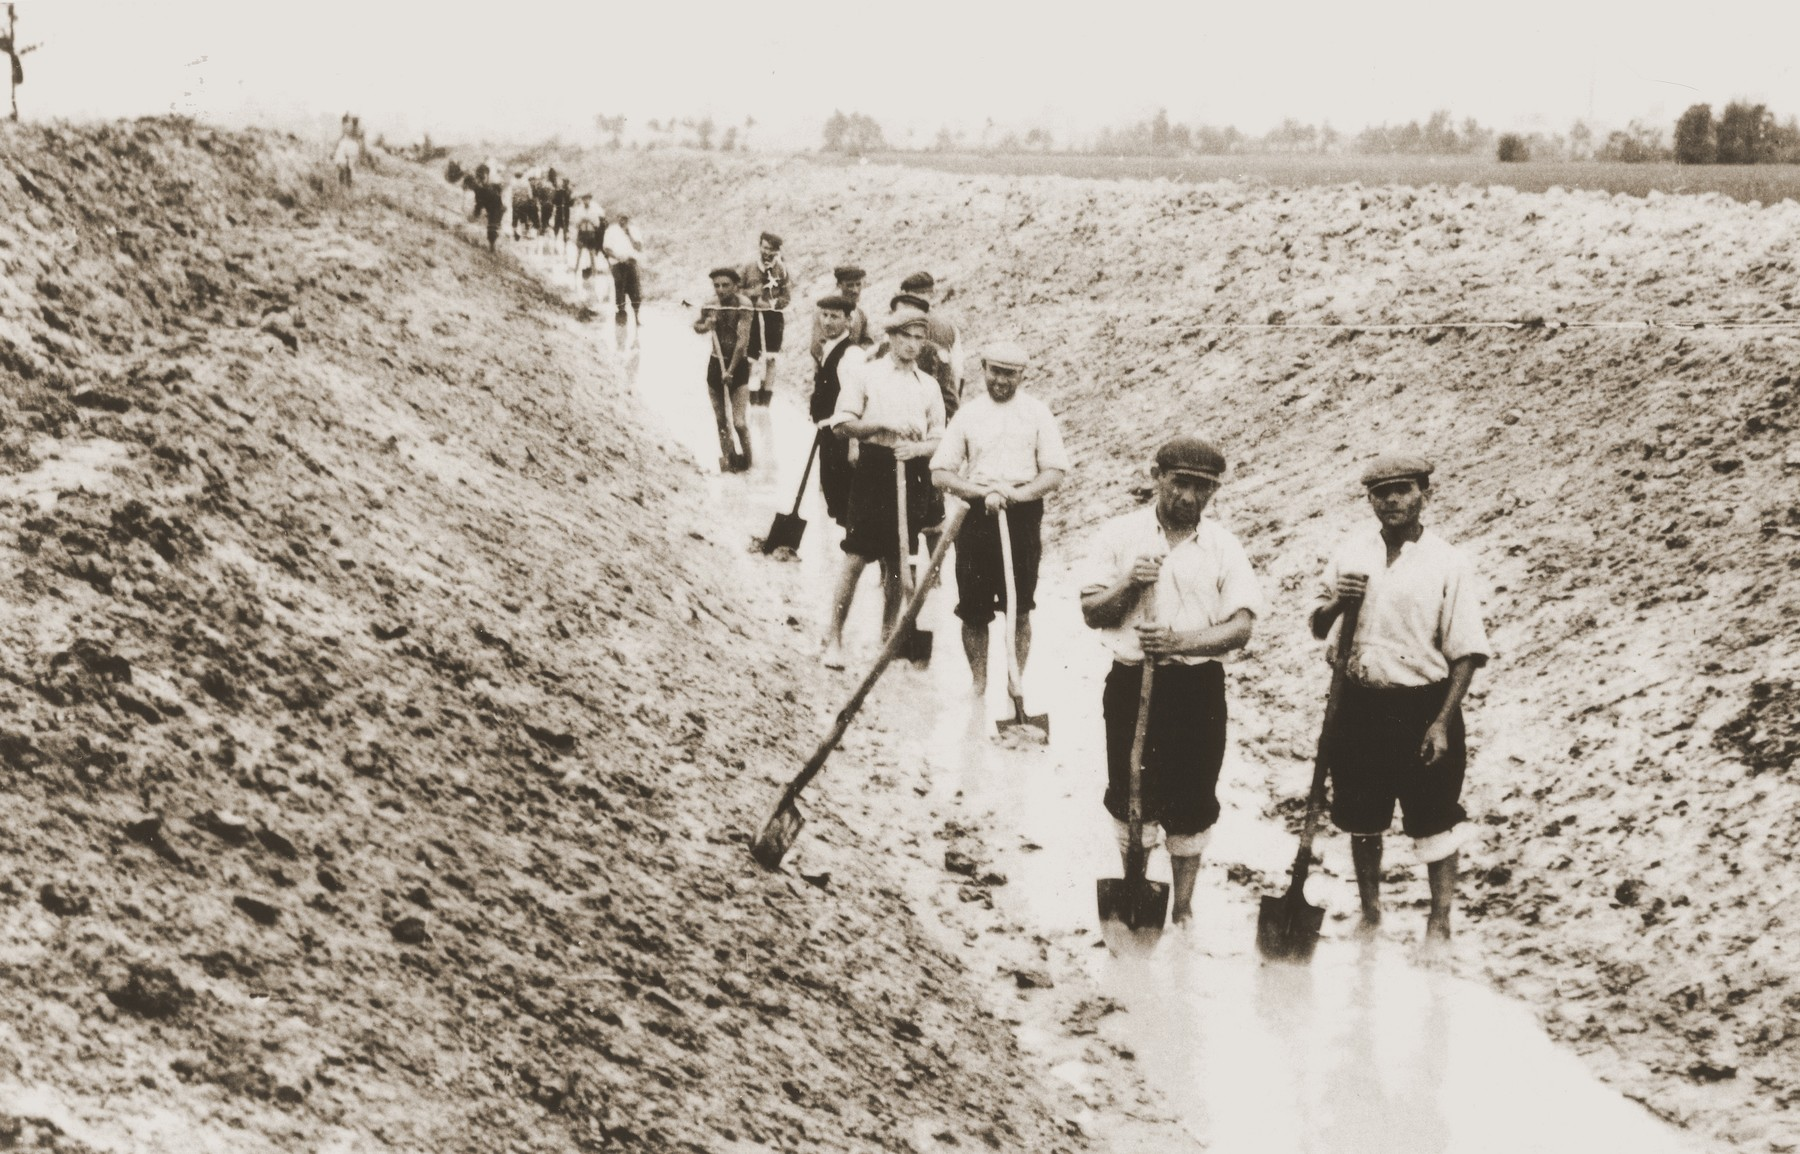 Jews at forced labor stand with shovels in a water-filled trench.